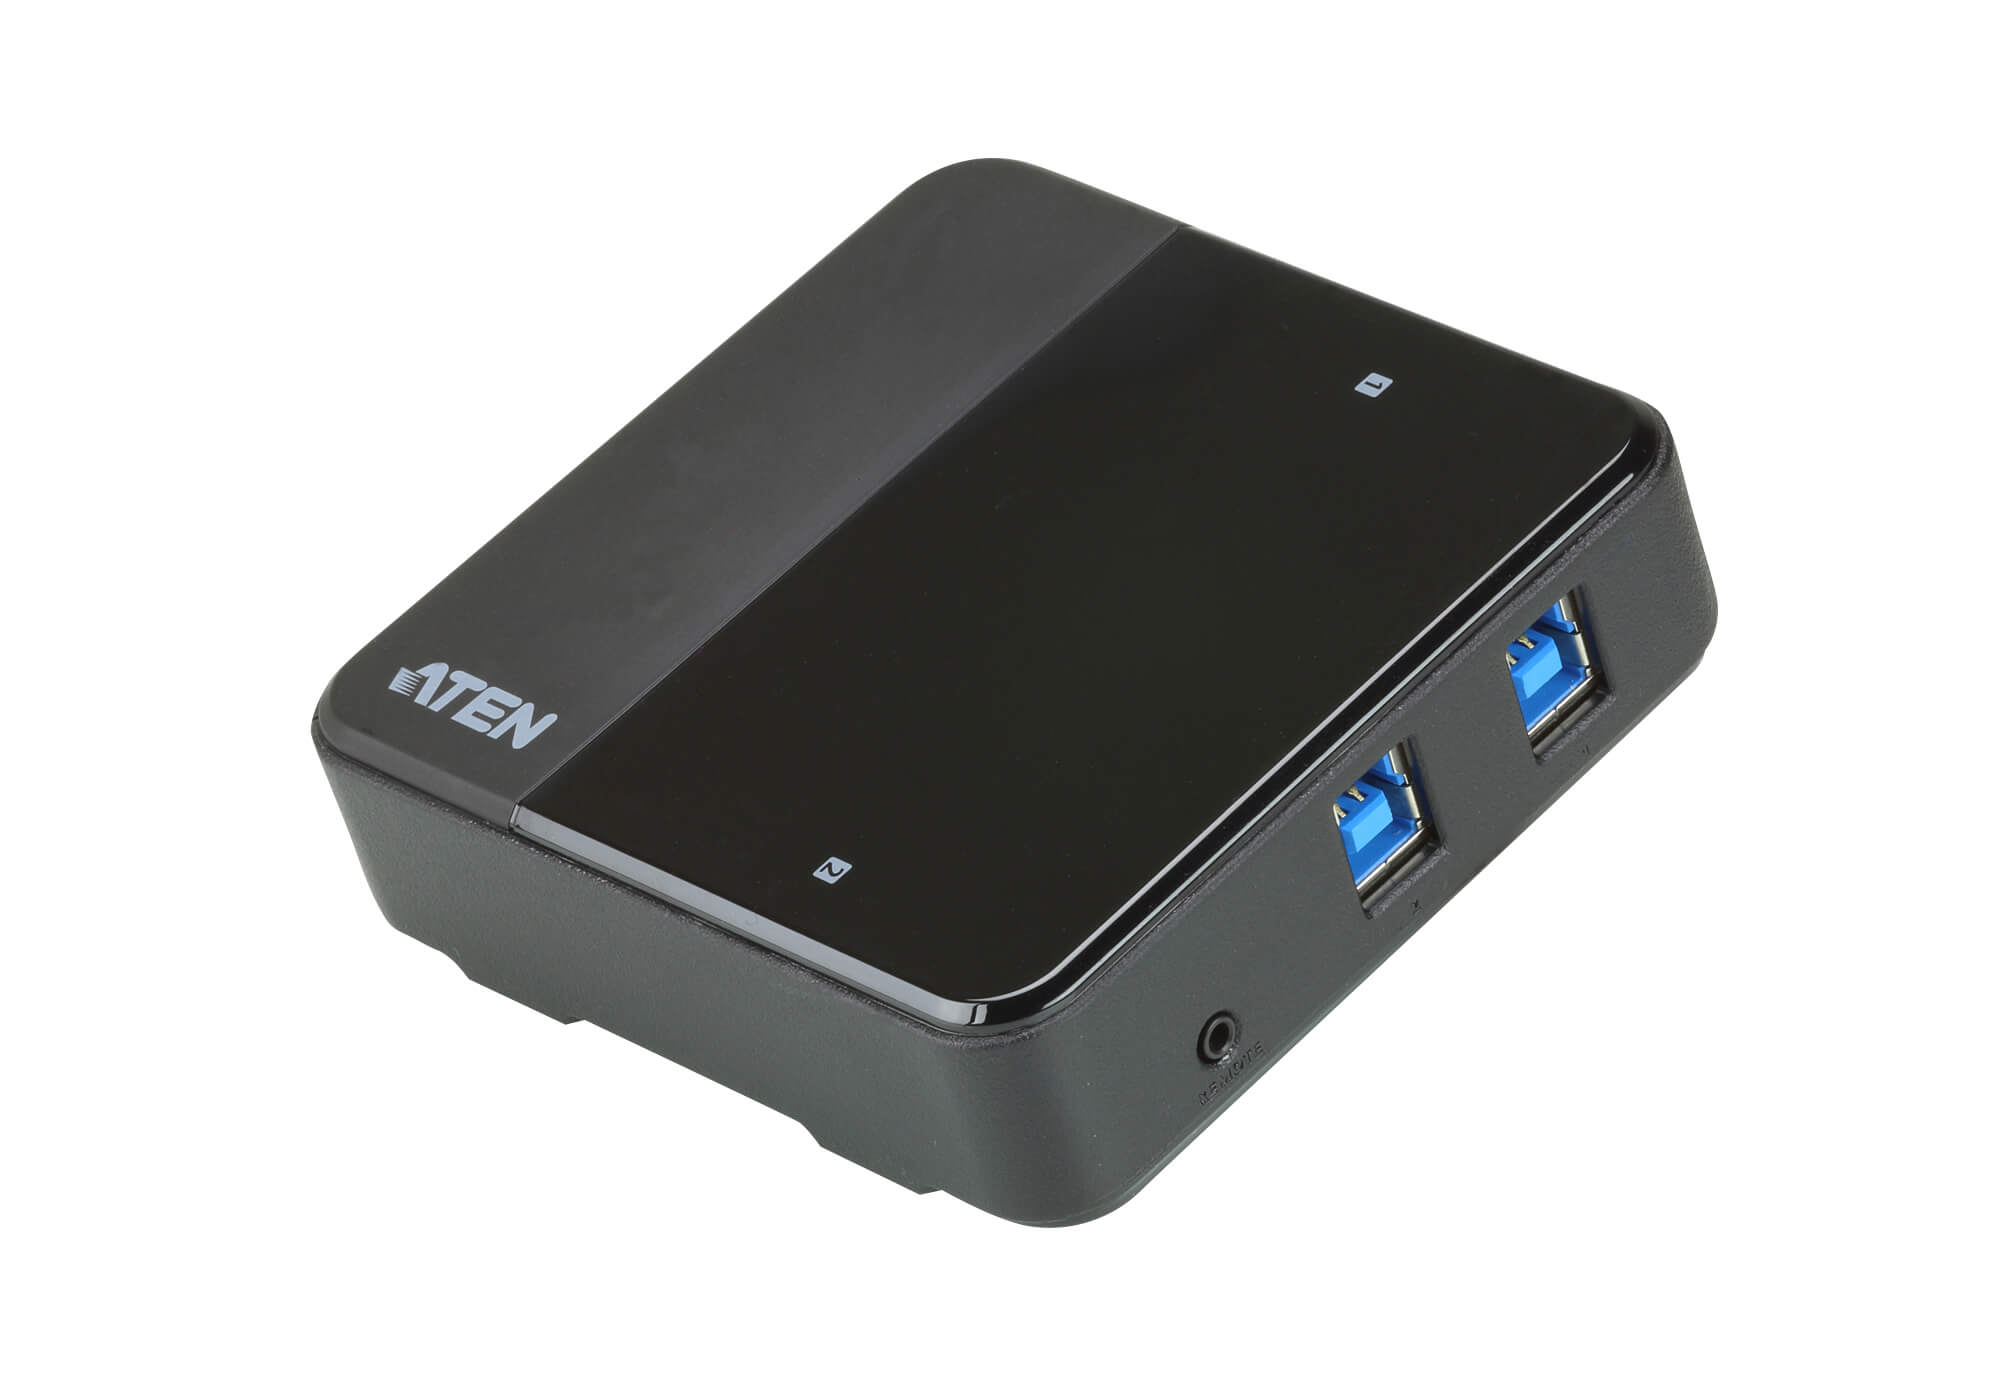 2 x 4 USB 3.2 Gen1 Peripheral Sharing Switch-1